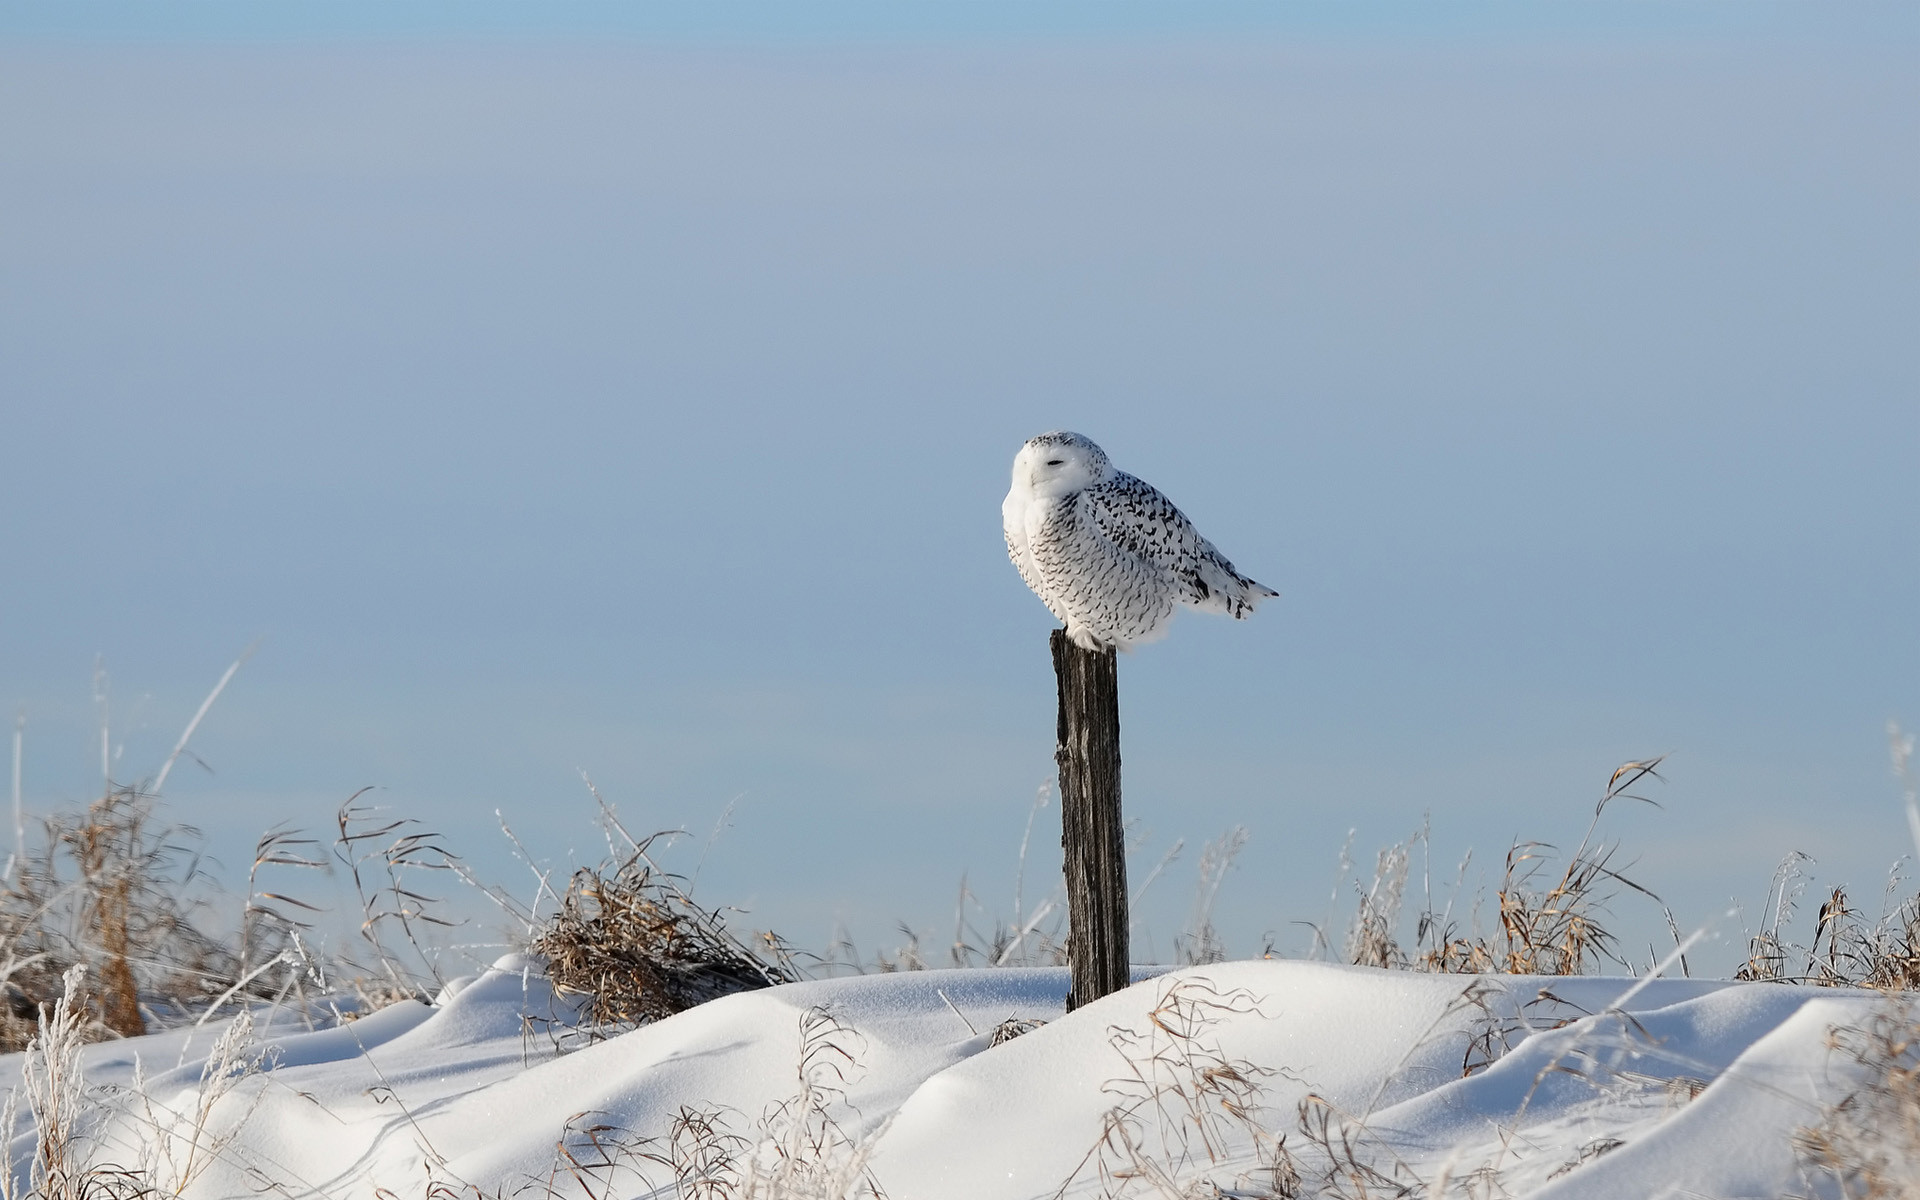 Snowy Owl Wallpaper Wide with HD Wallpaper Resolution px 391.83  KB Animals Barn Iphone Art